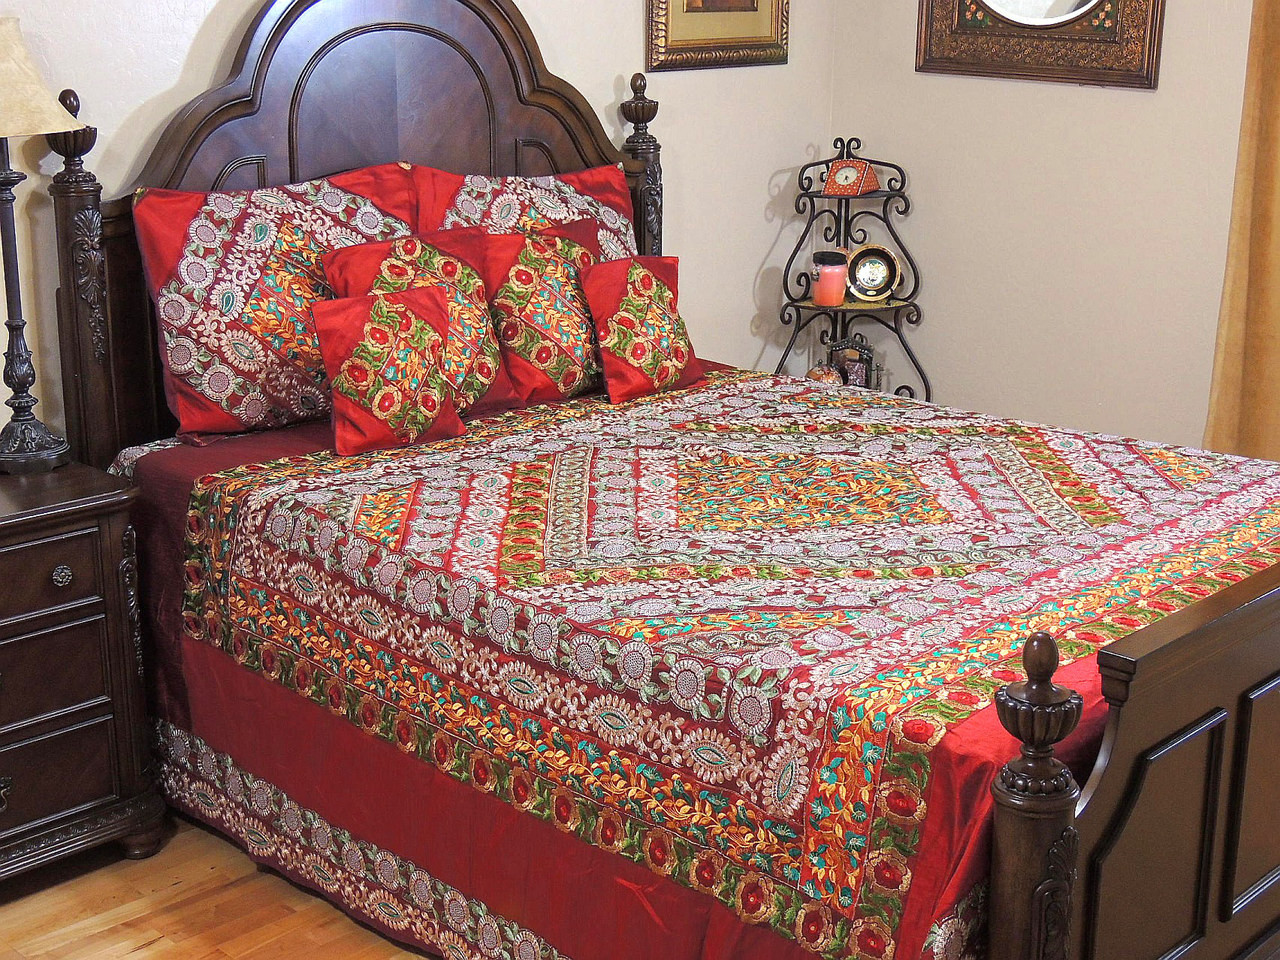 luxury red indian sari set gift duvet cover ethnic kitchen covers bedding king novahaat dp amazon com collection embroidered home